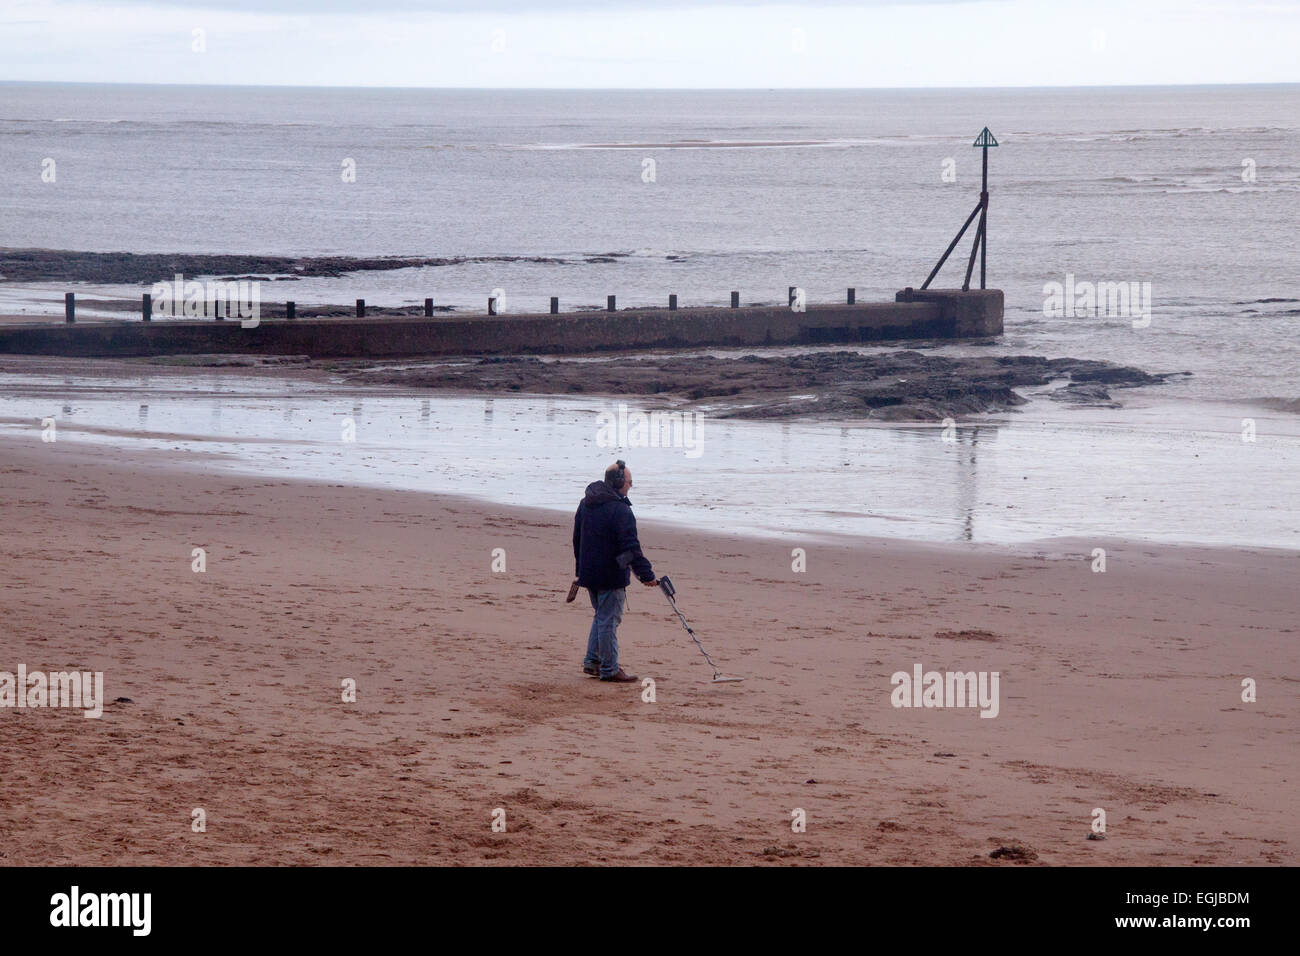 A man uses a metal detector on Exmouth beach - Stock Image